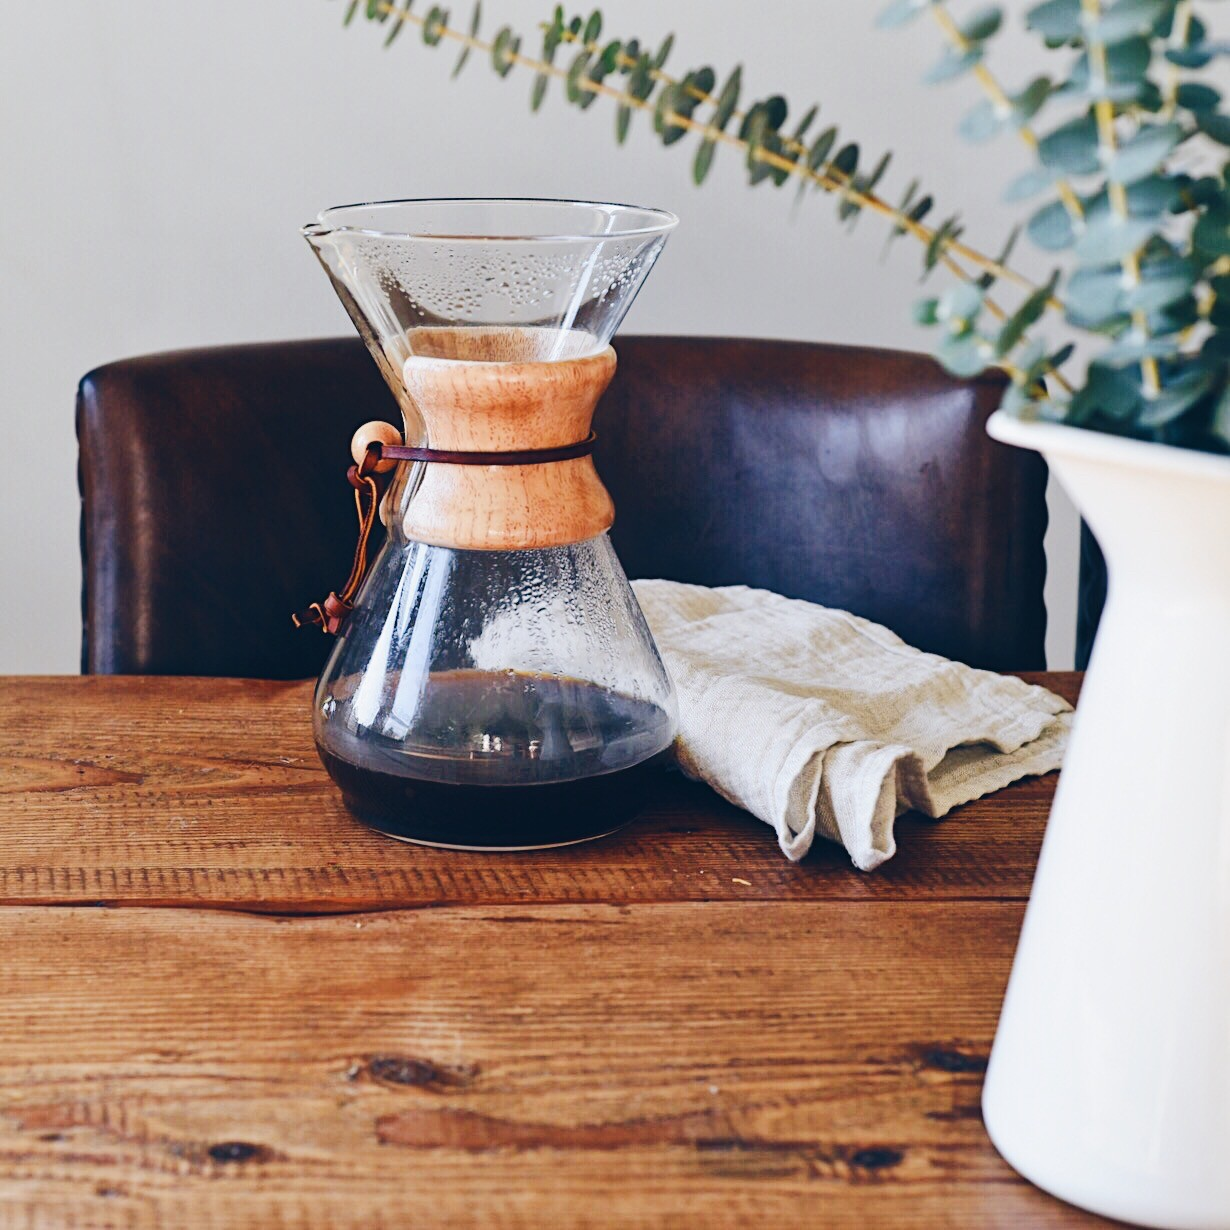 Over-extracted coffee tastes bitter. Under-extracted coffee tastes sour. If you want to know how to make coffee at home that tastes better, whether you're using a Chemex, Hario, French Press, or Aeropress, we have a simple guide for adjusting the variables that play into the best brew.